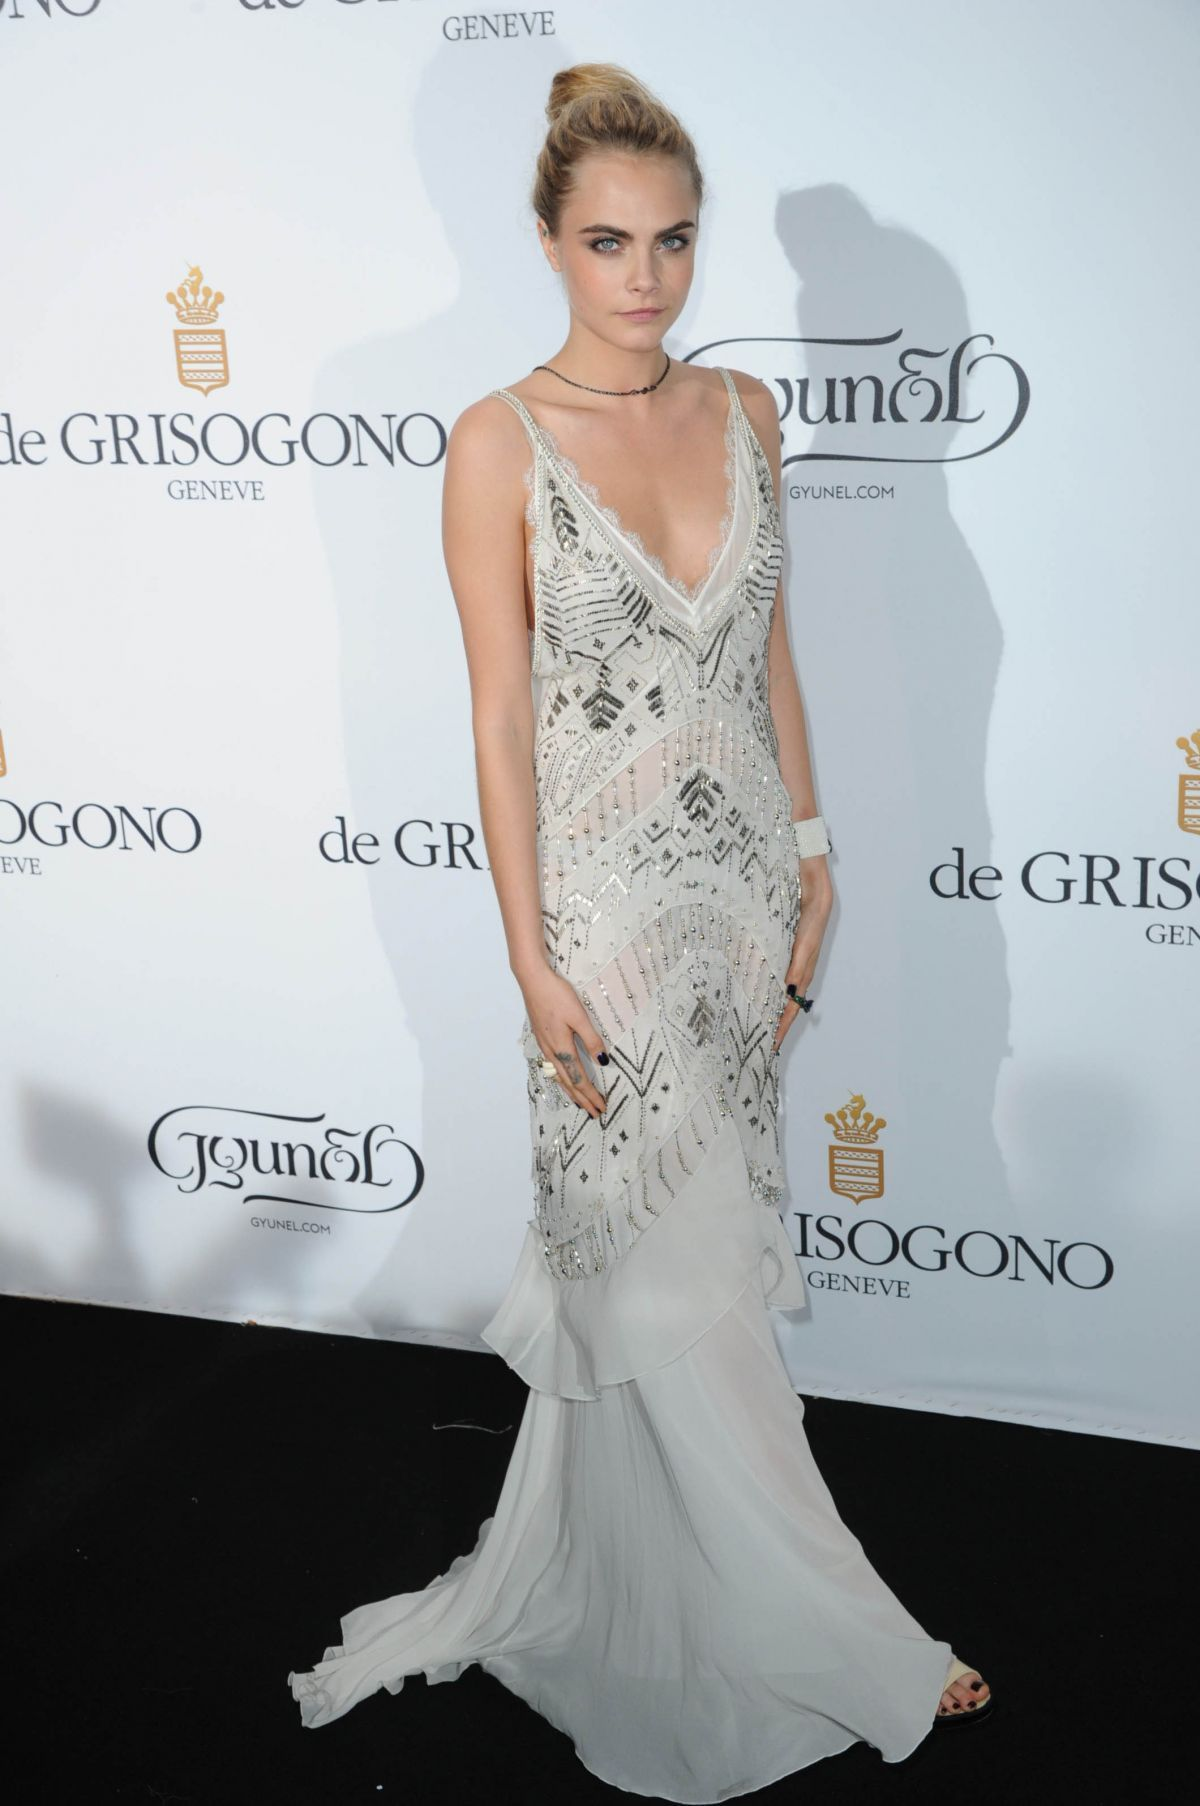 Cara Delevingneat De Grisogono Fatale in Cannes Party at Cannes Film Festival